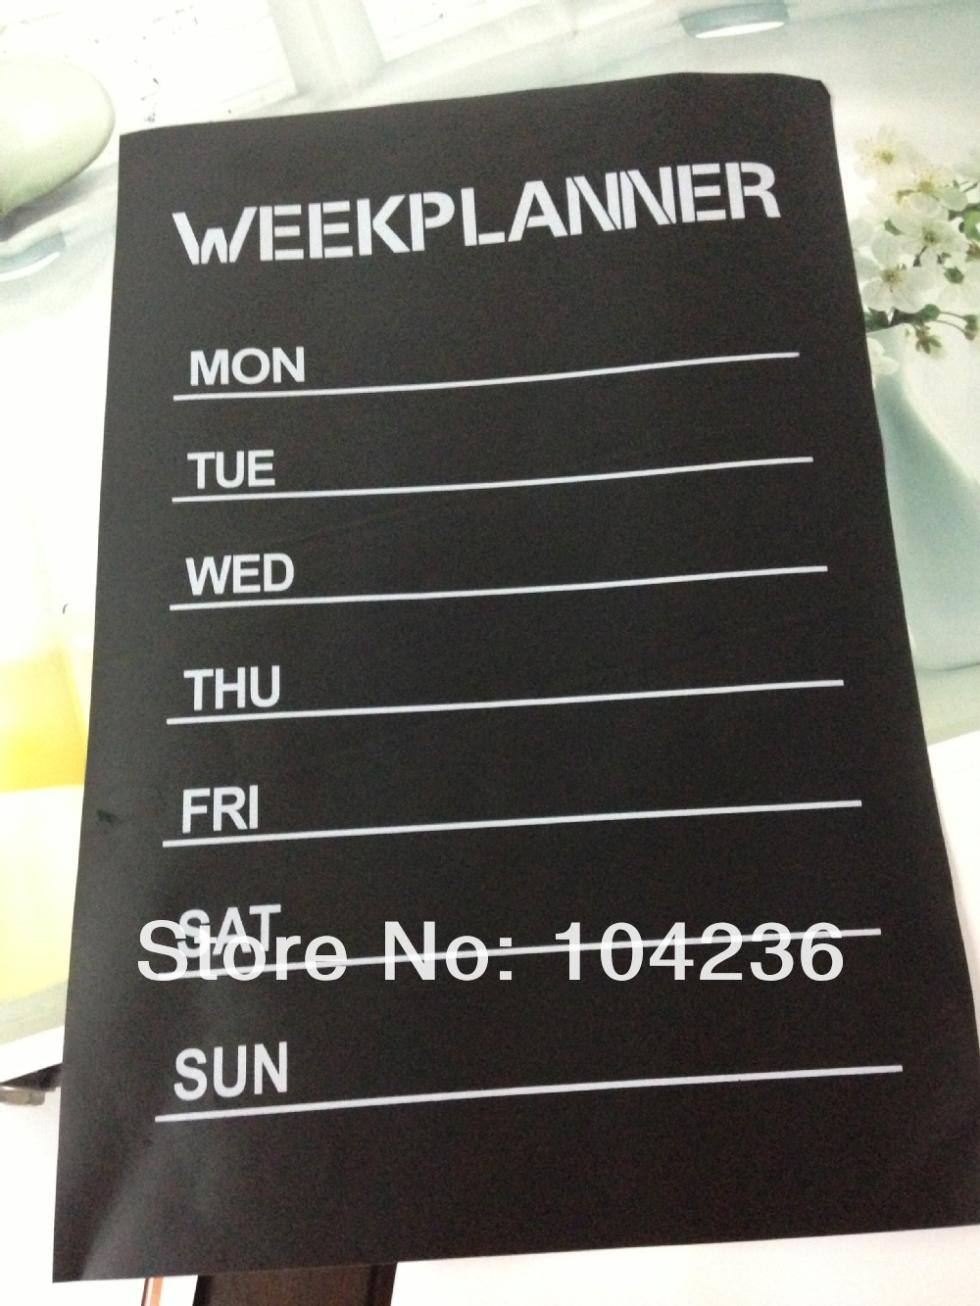 week planner chalkboard stickers office living room home decorations zooyoo201 diy nursery note labels wall decals mural art(China (Mainland))